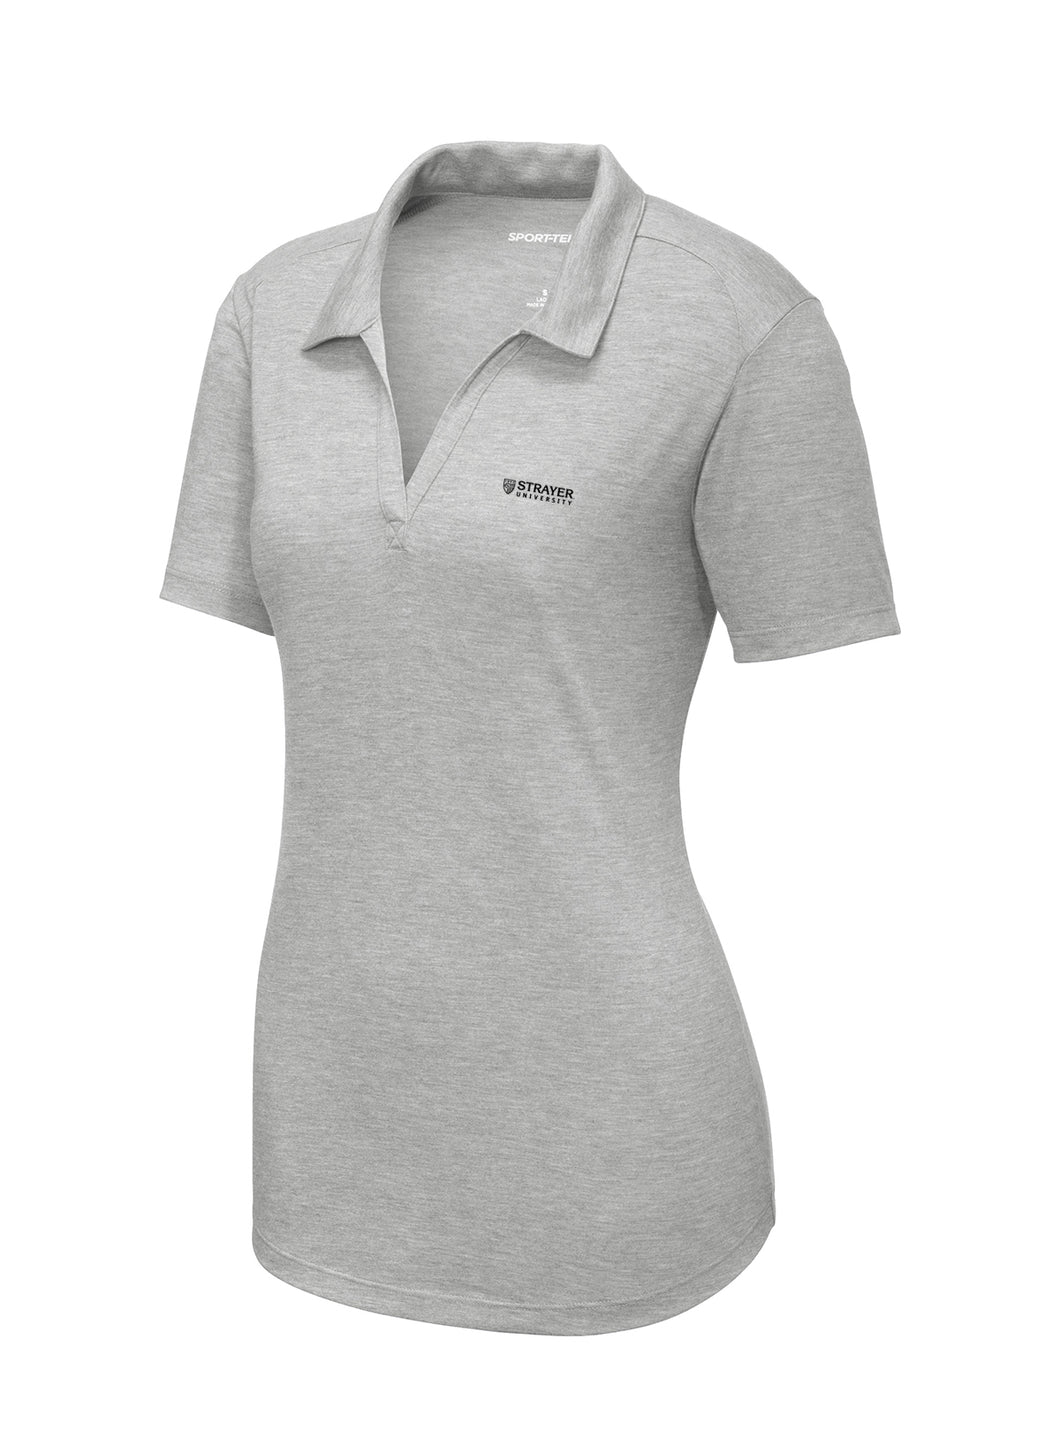 Sport-Tek Ladies PosiCharge Tri-Blend Wicking Polo -Light Heather Grey